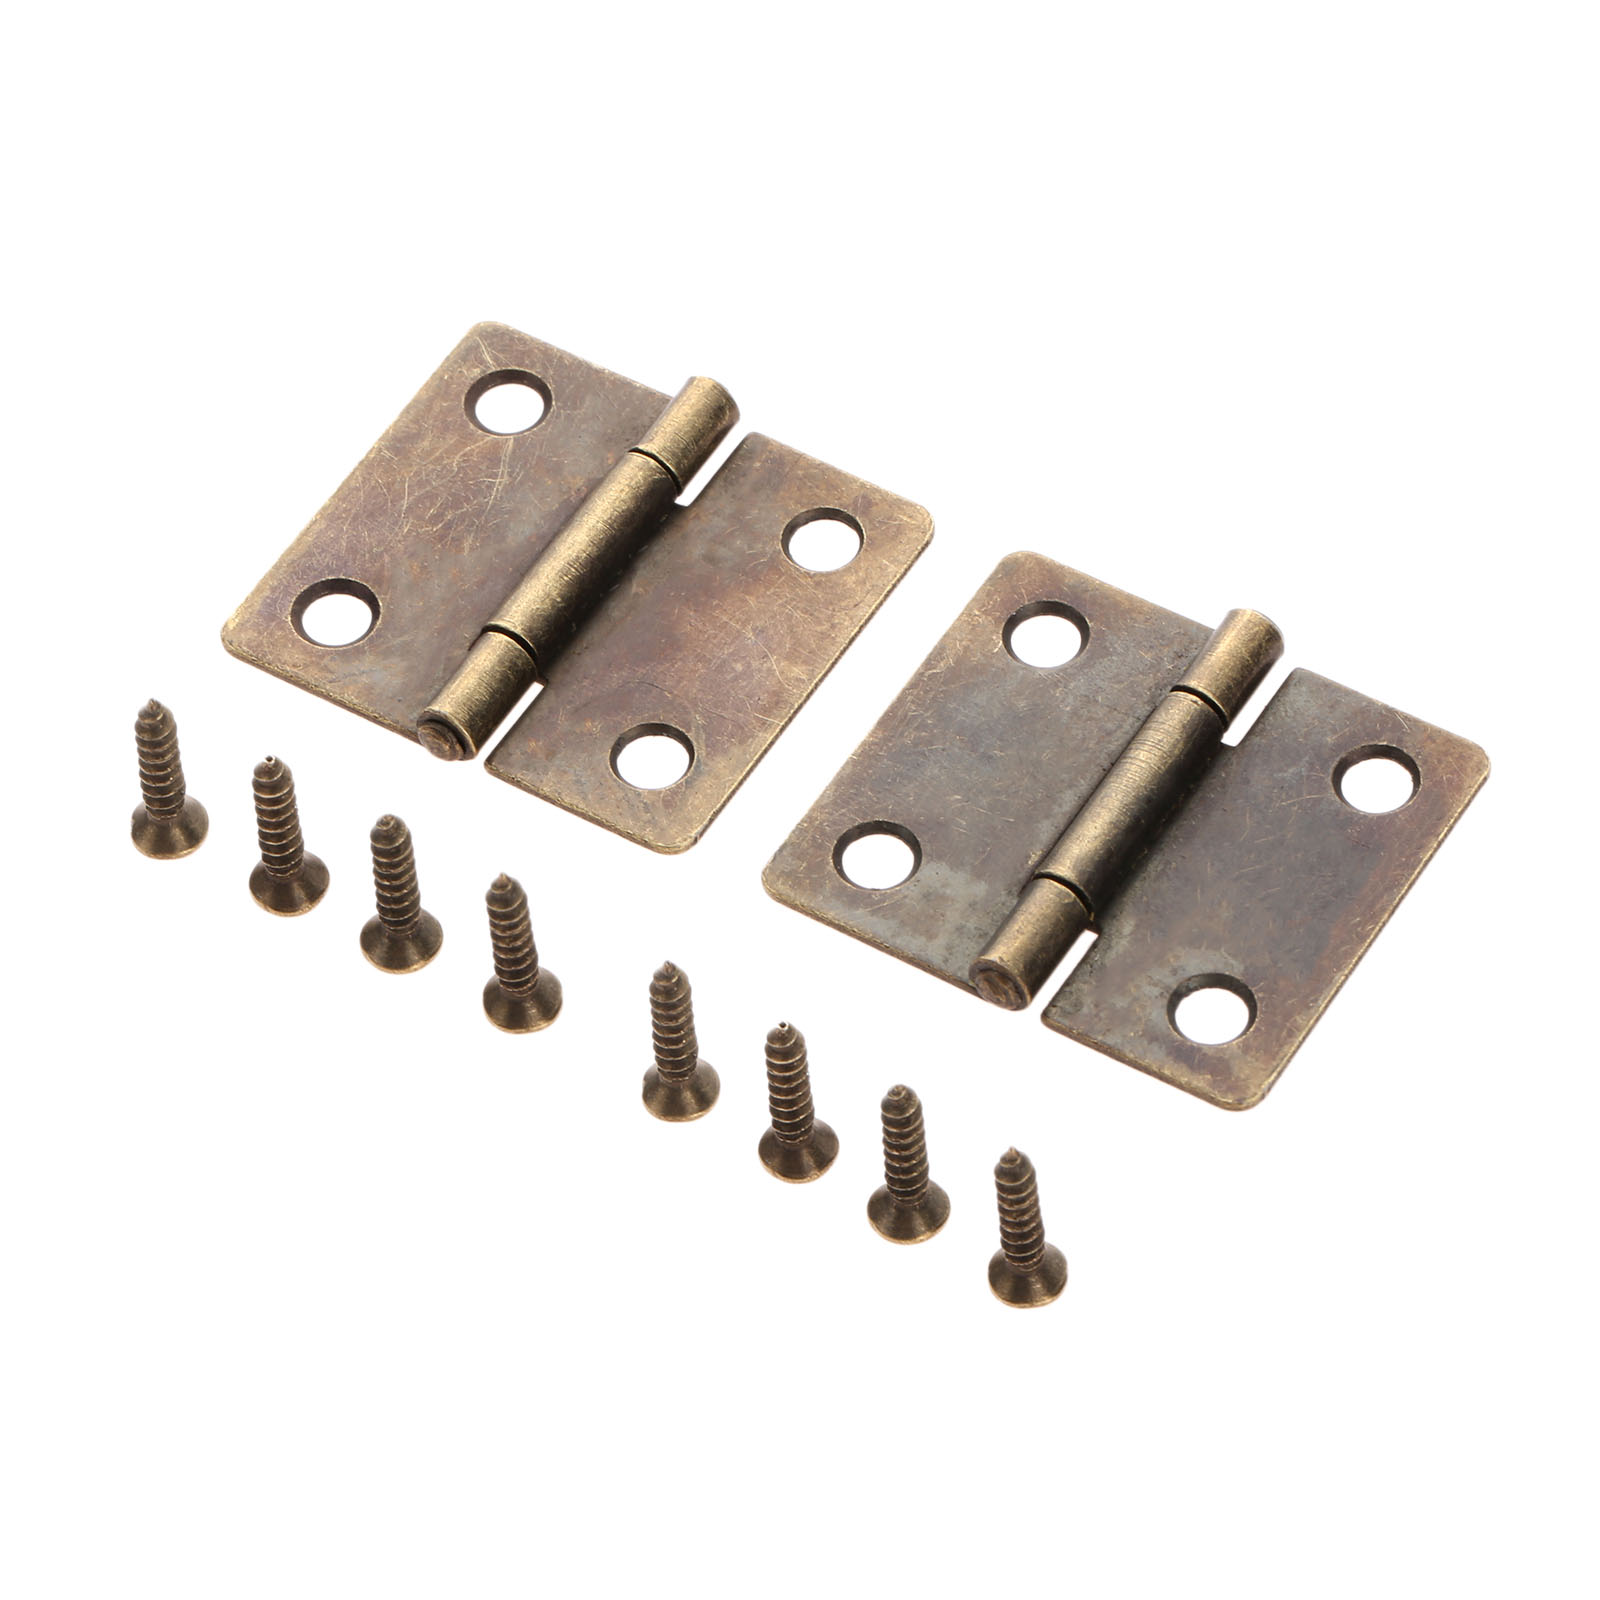 2Pc 38x34mm Antique Bronze Furniture Cabinet Drawer Door Butt Hinge Jewelry Wood Box Decorative Hinge Vintage Furniture Hardware